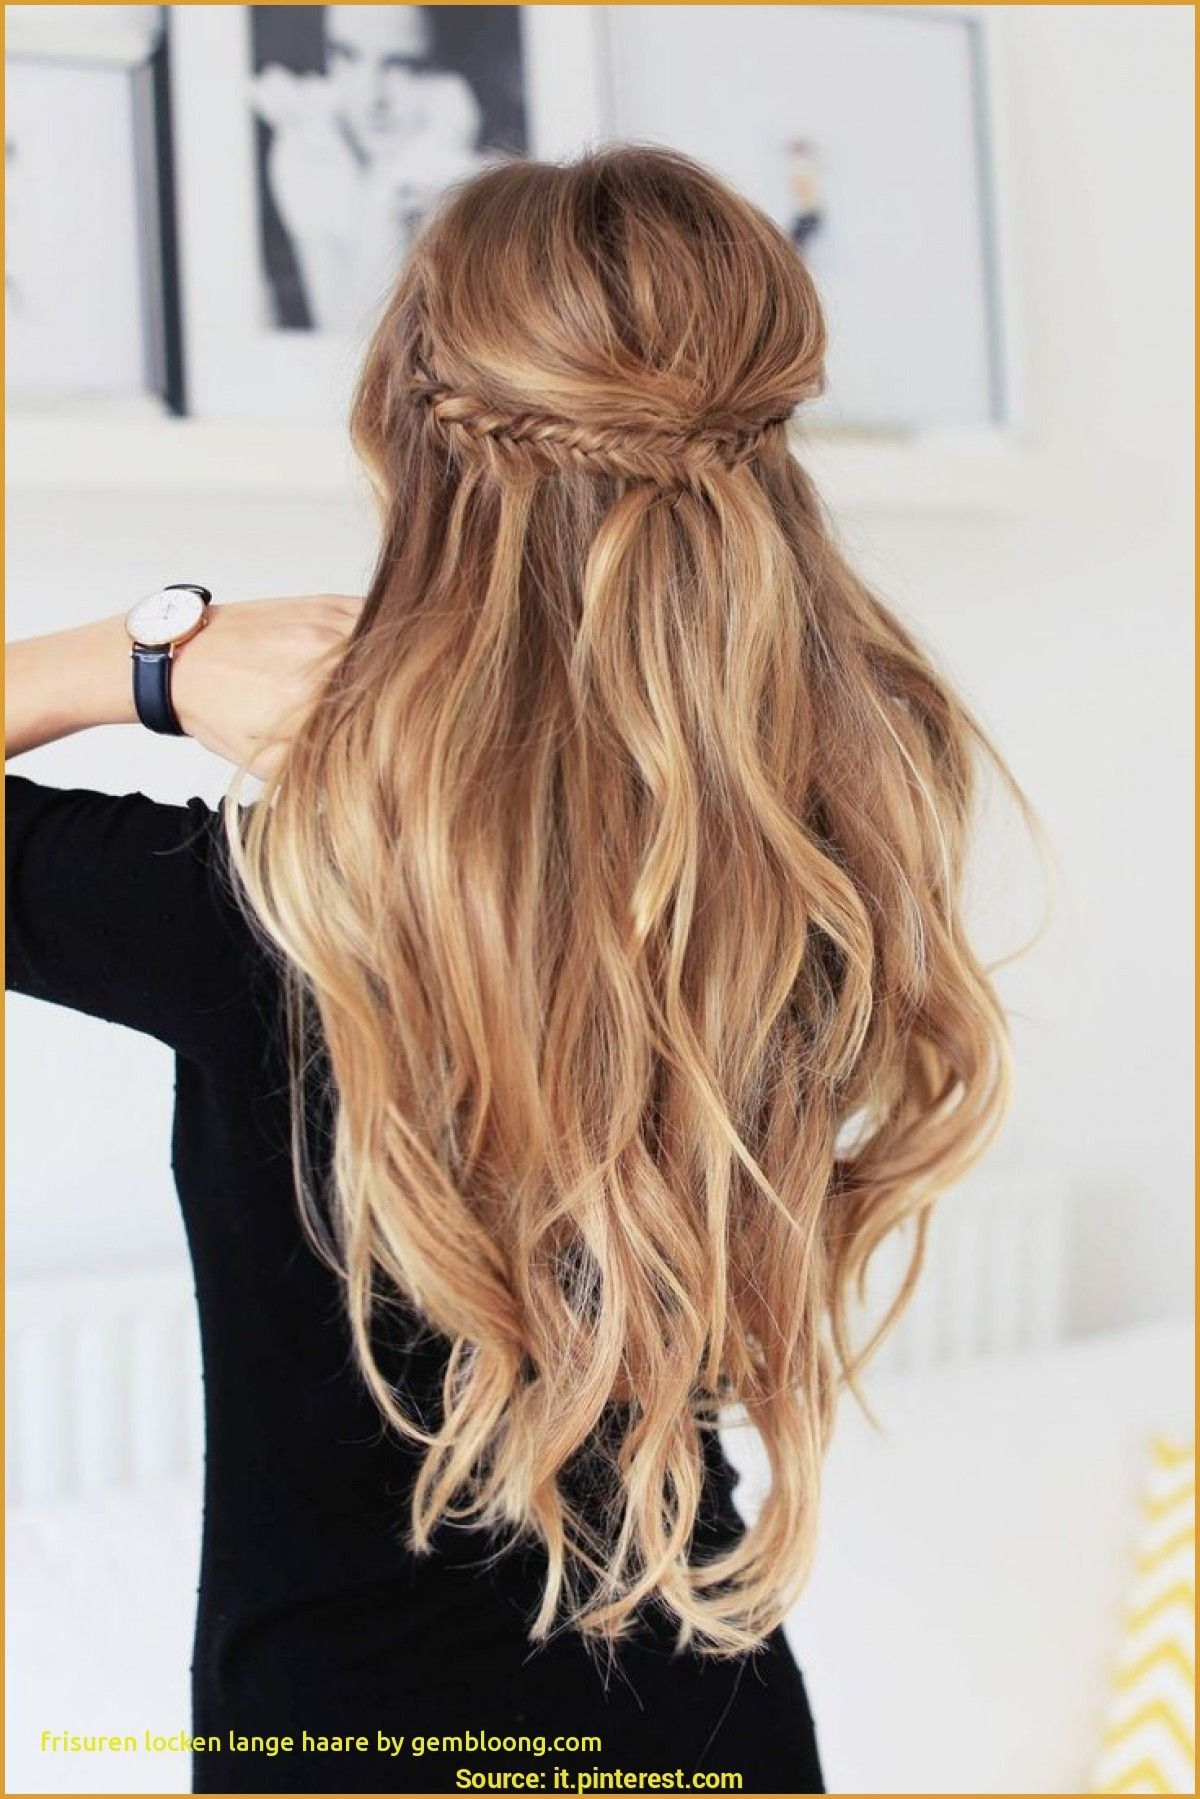 Frisuren Lange Haare Mit Locken Inspirational Frisuren Locken Lange Haare Einfache Frisuren Hair Styles Hairstyle Long Hair Styles